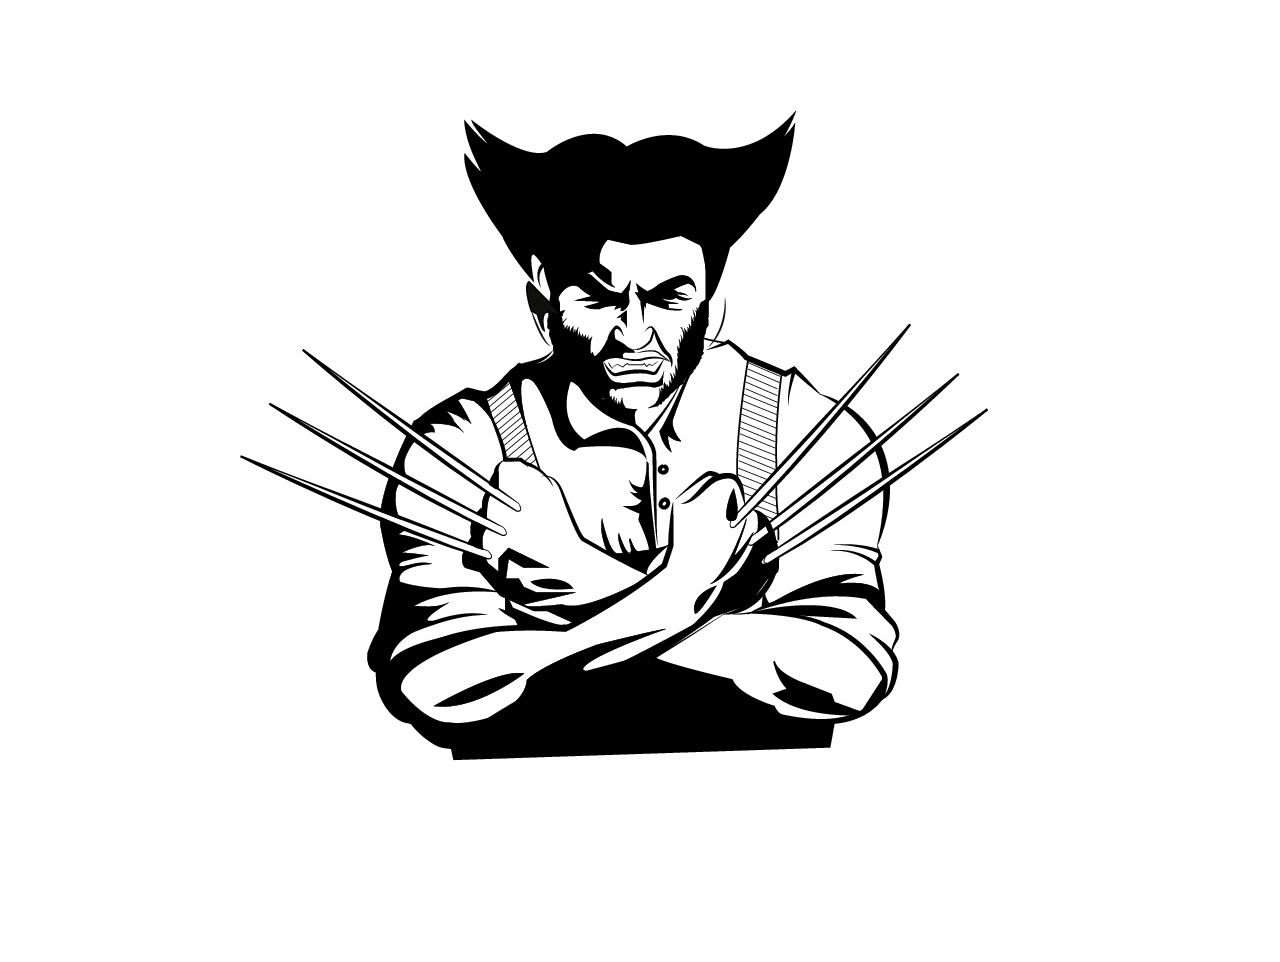 Drawing wolverine cool. Welcome to smokeworks cambridge